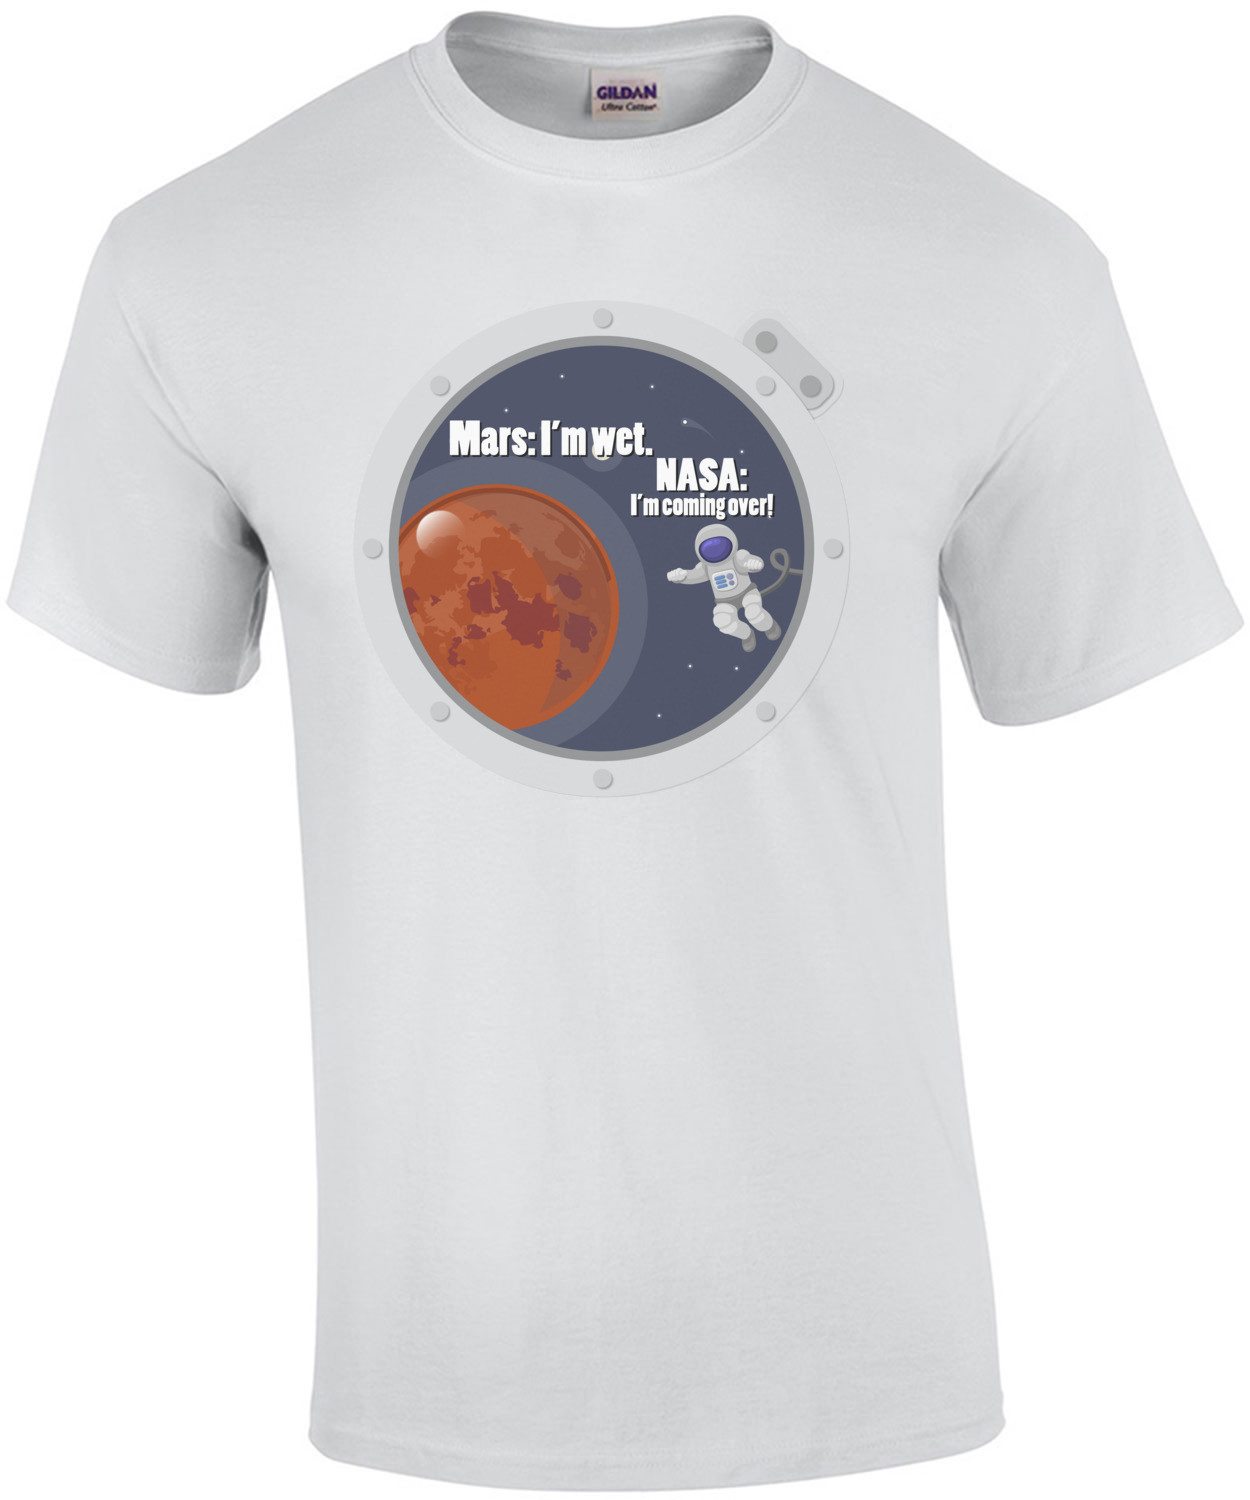 Mars: I'm wet. Nasa: I'm coming over! T-Shirt